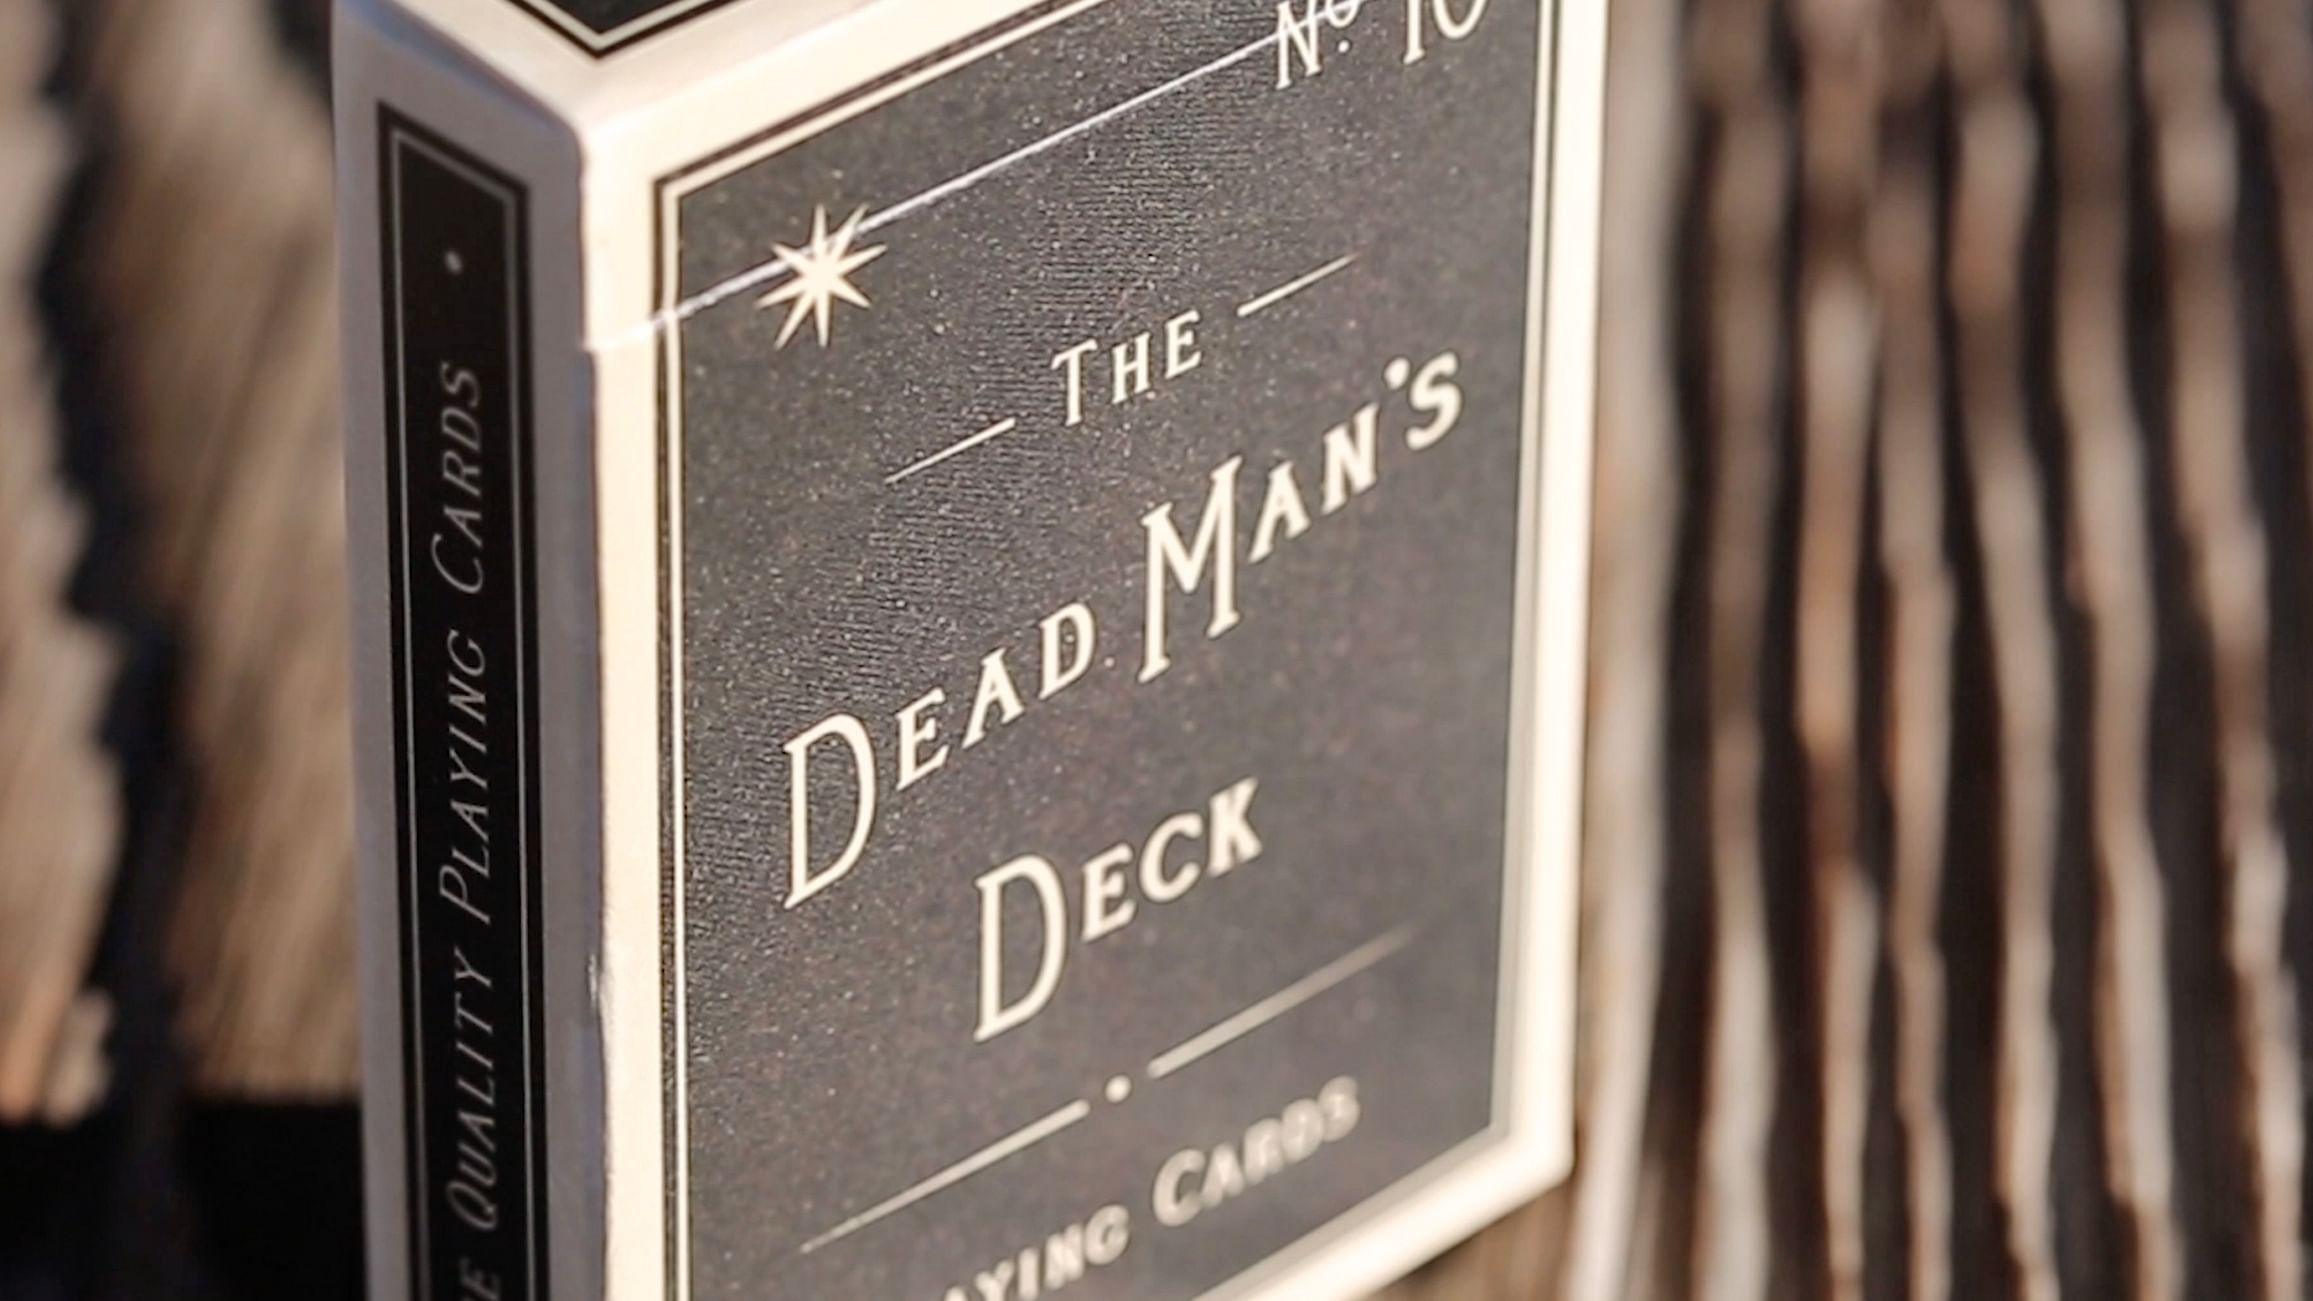 Dead Man's Deck - magic